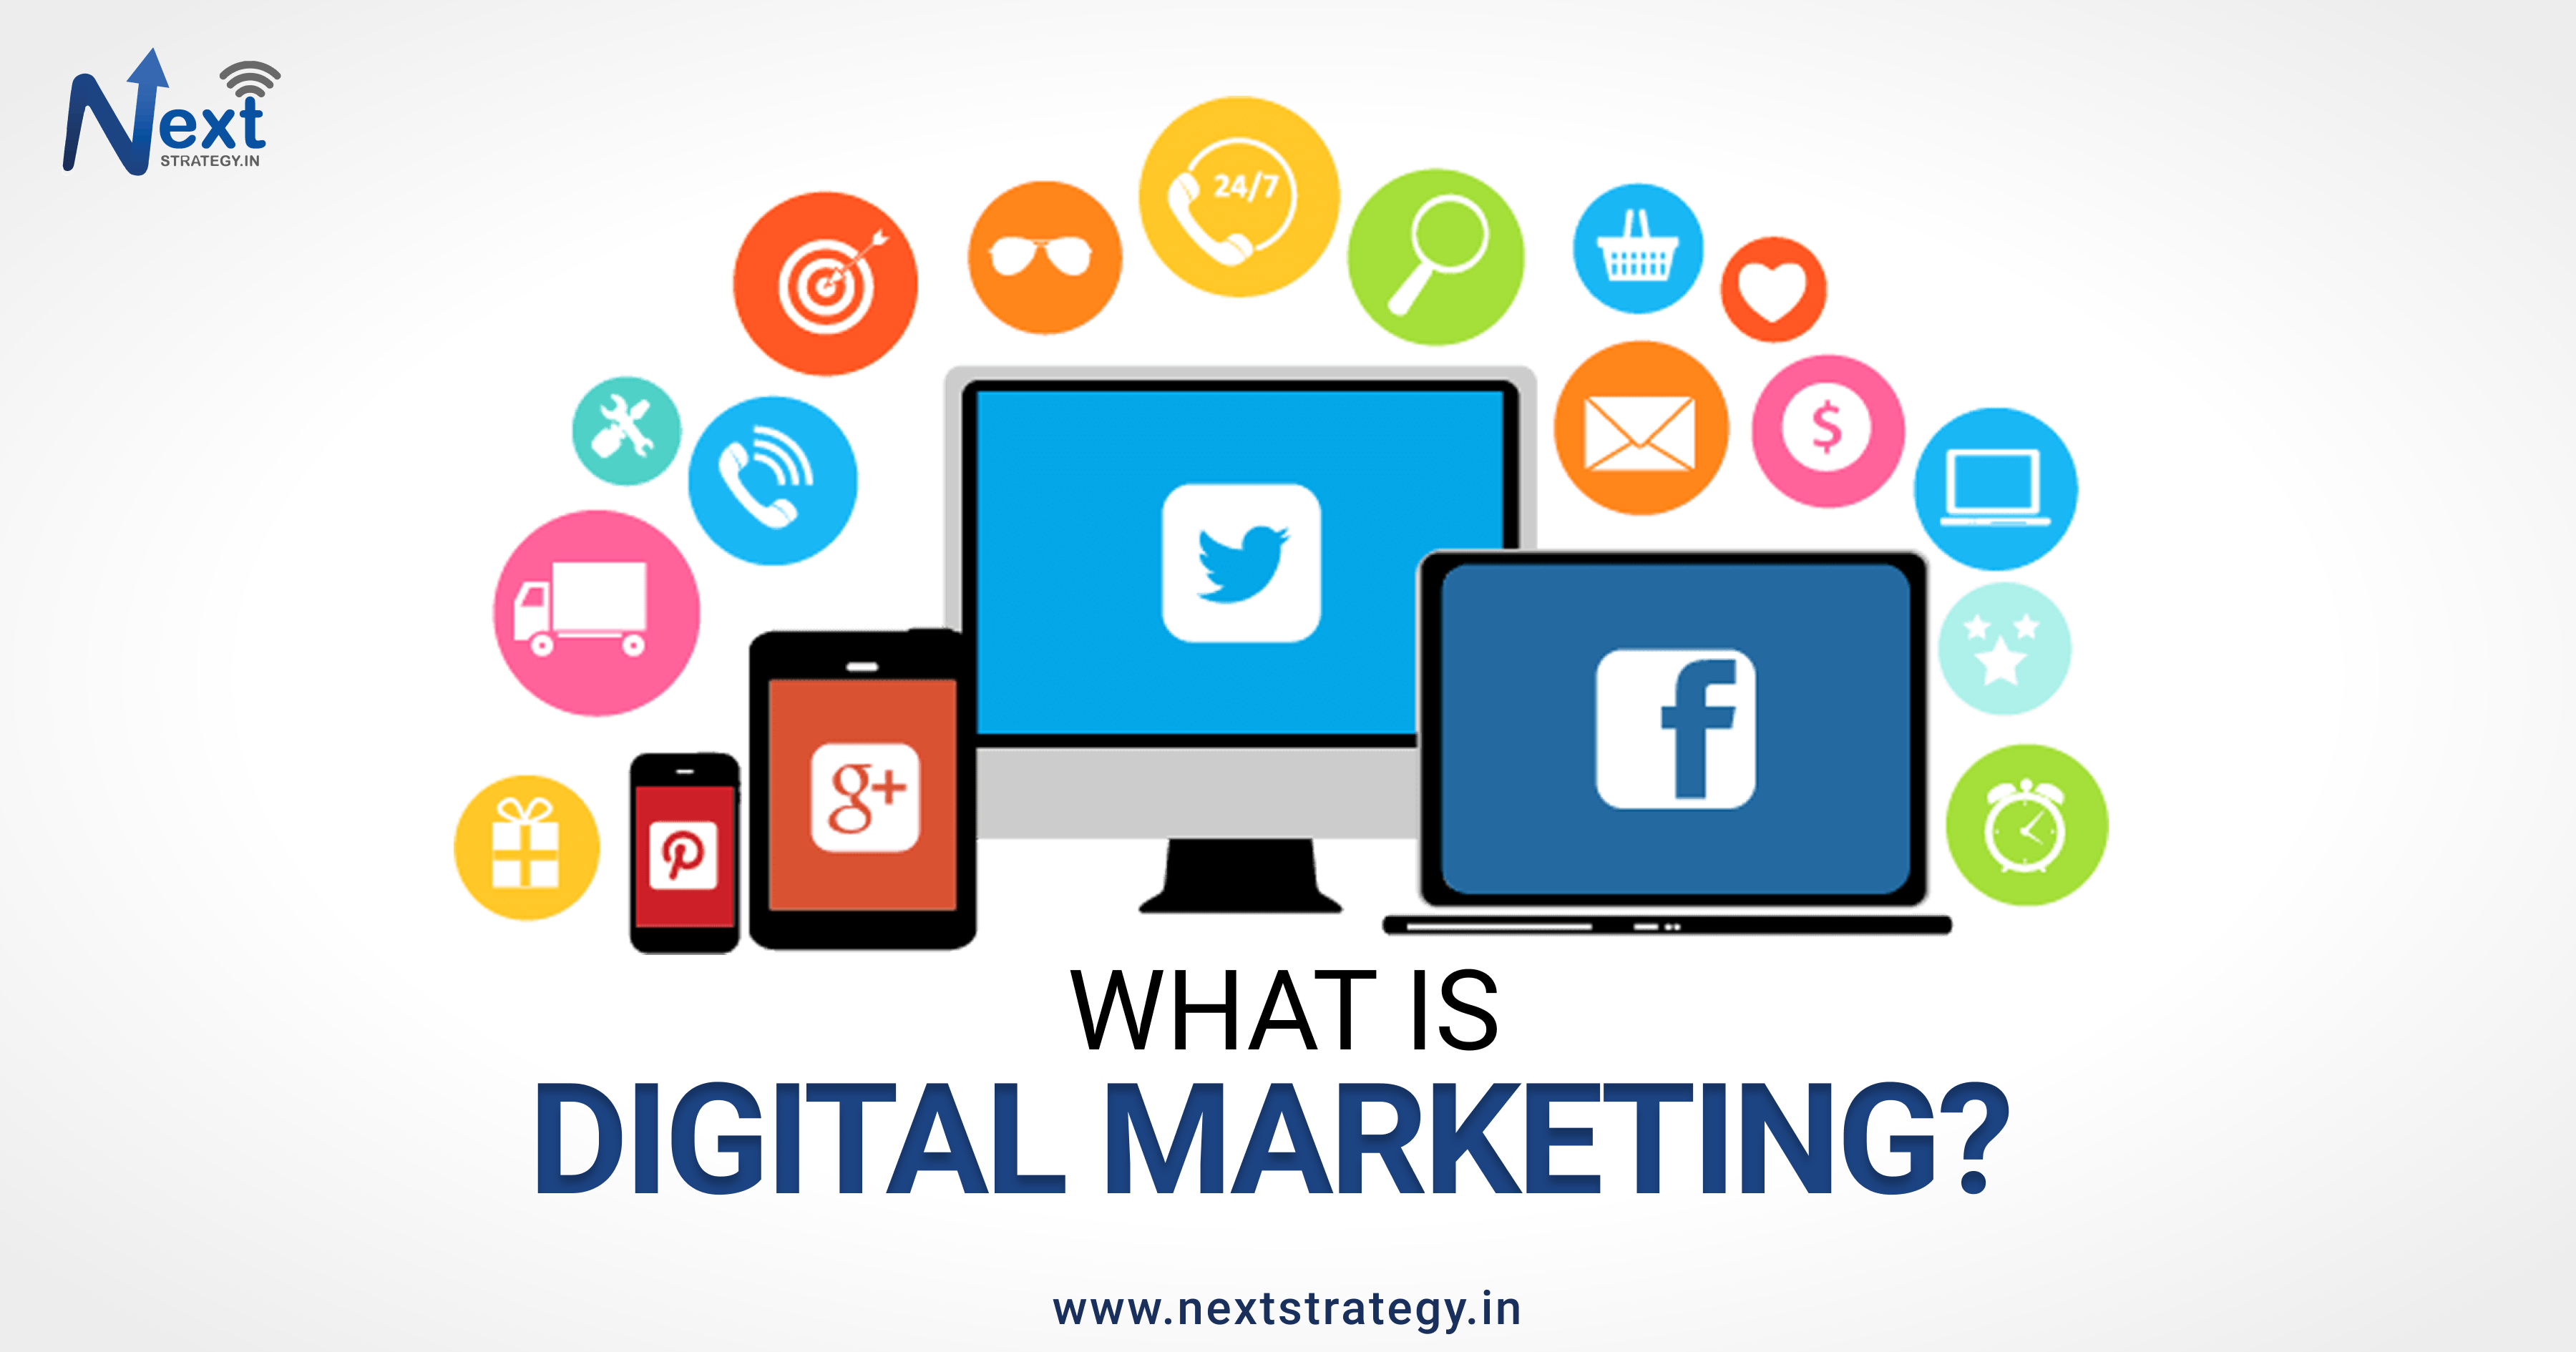 What is Digital Marketing - Next Strategy